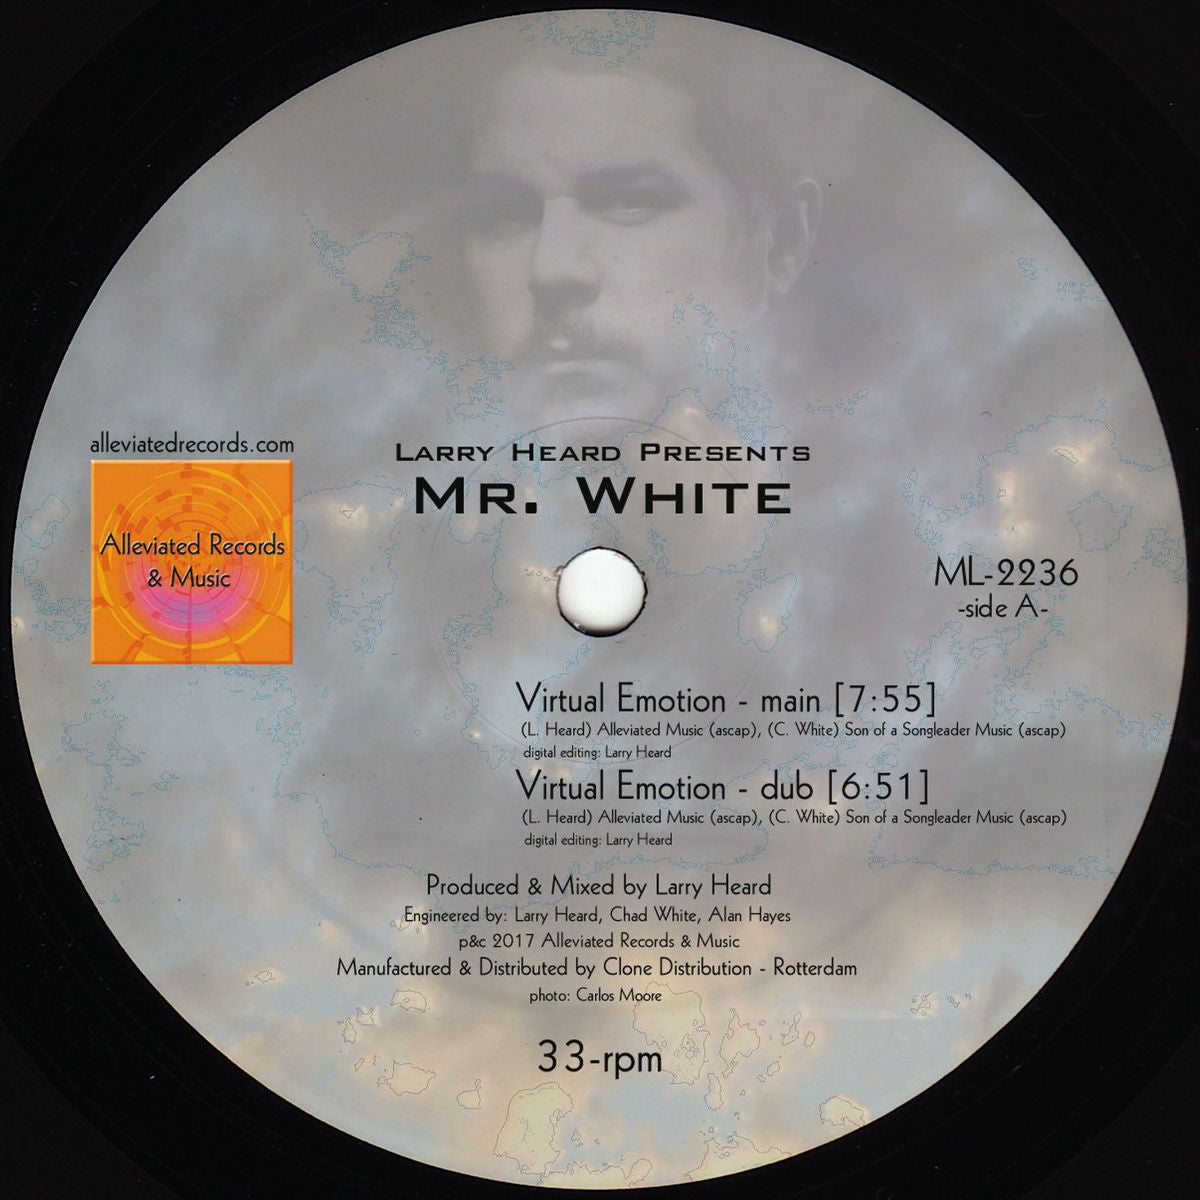 Larry Heard Presents: Mr. White - Virtual Emotion / Supernova